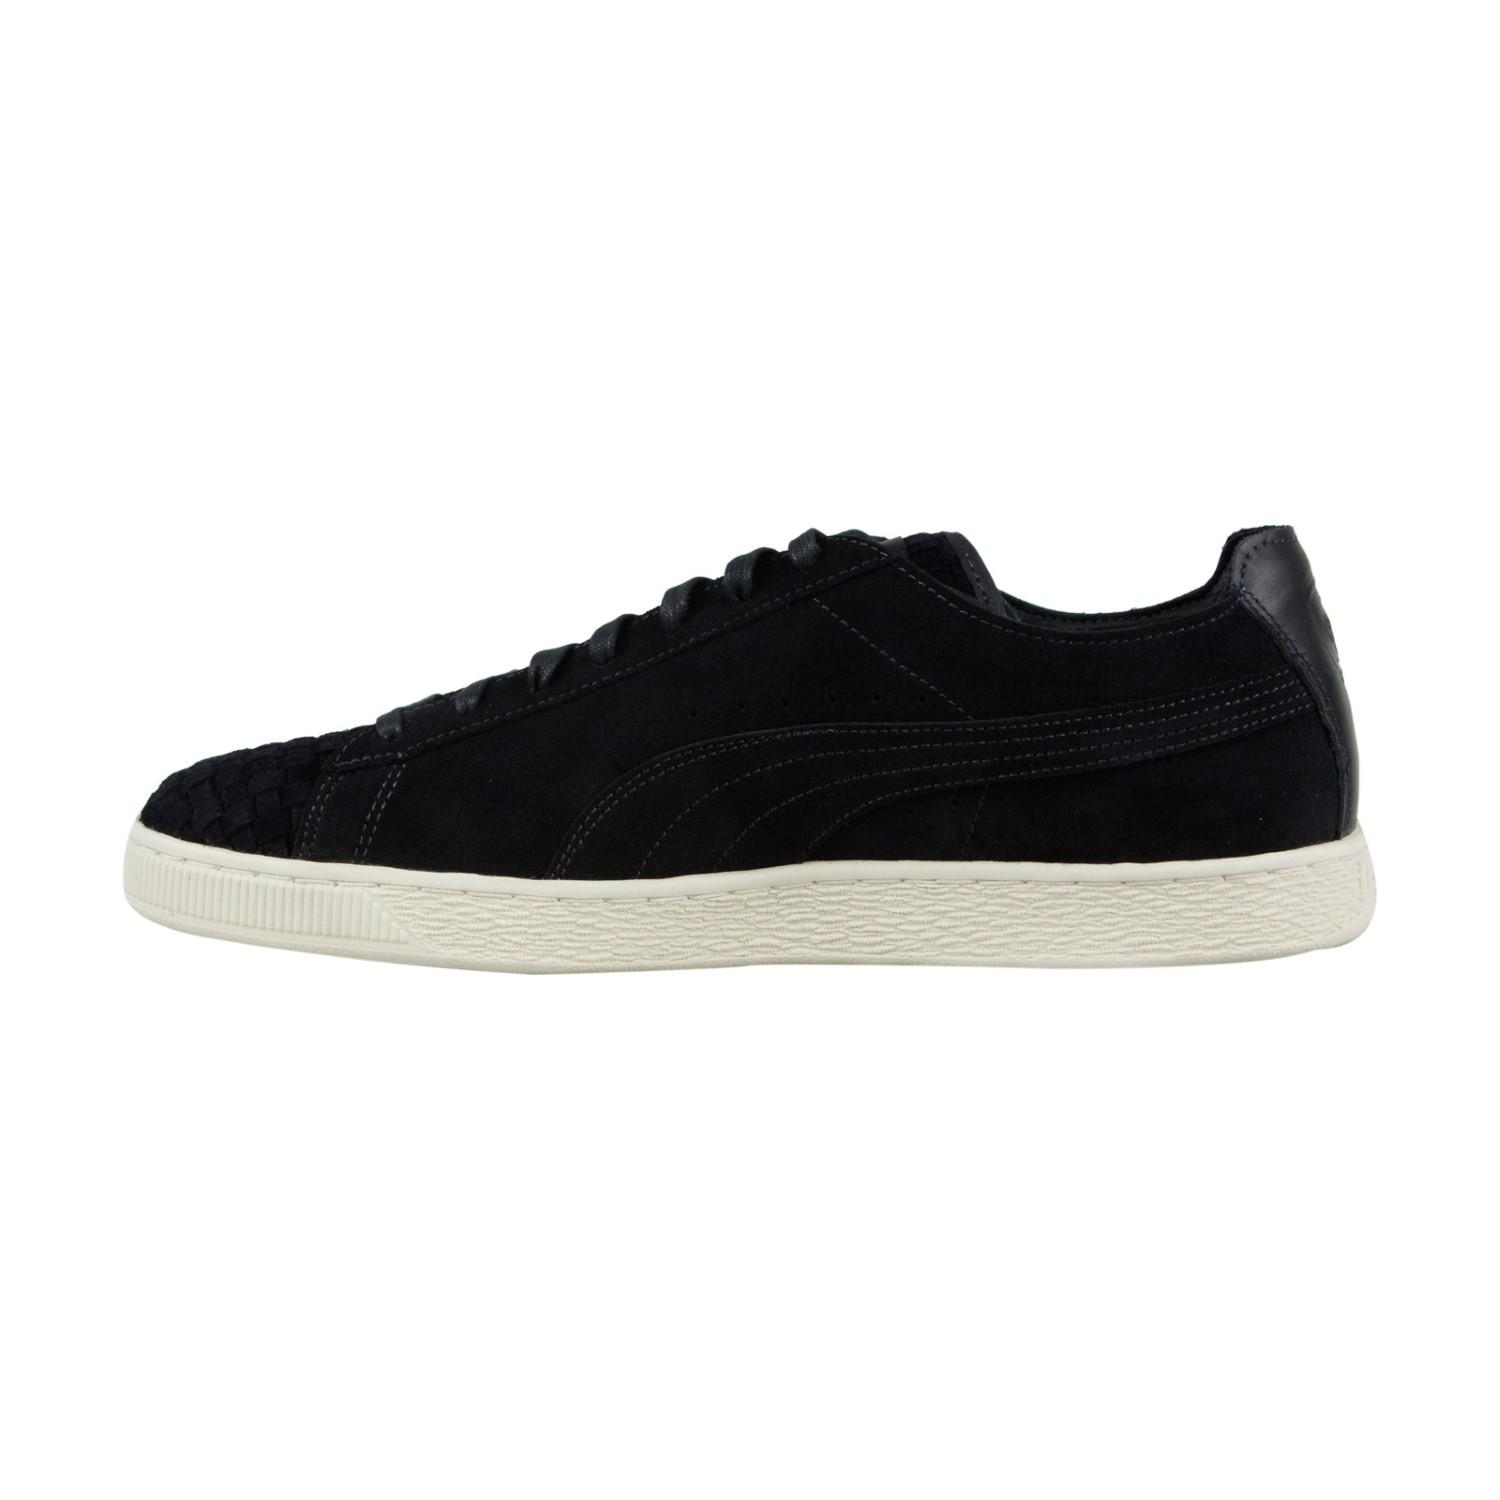 Lyst - PUMA Sf Ls Moonless Night Whisper White Lace Up Sneakers in ... da38cde41